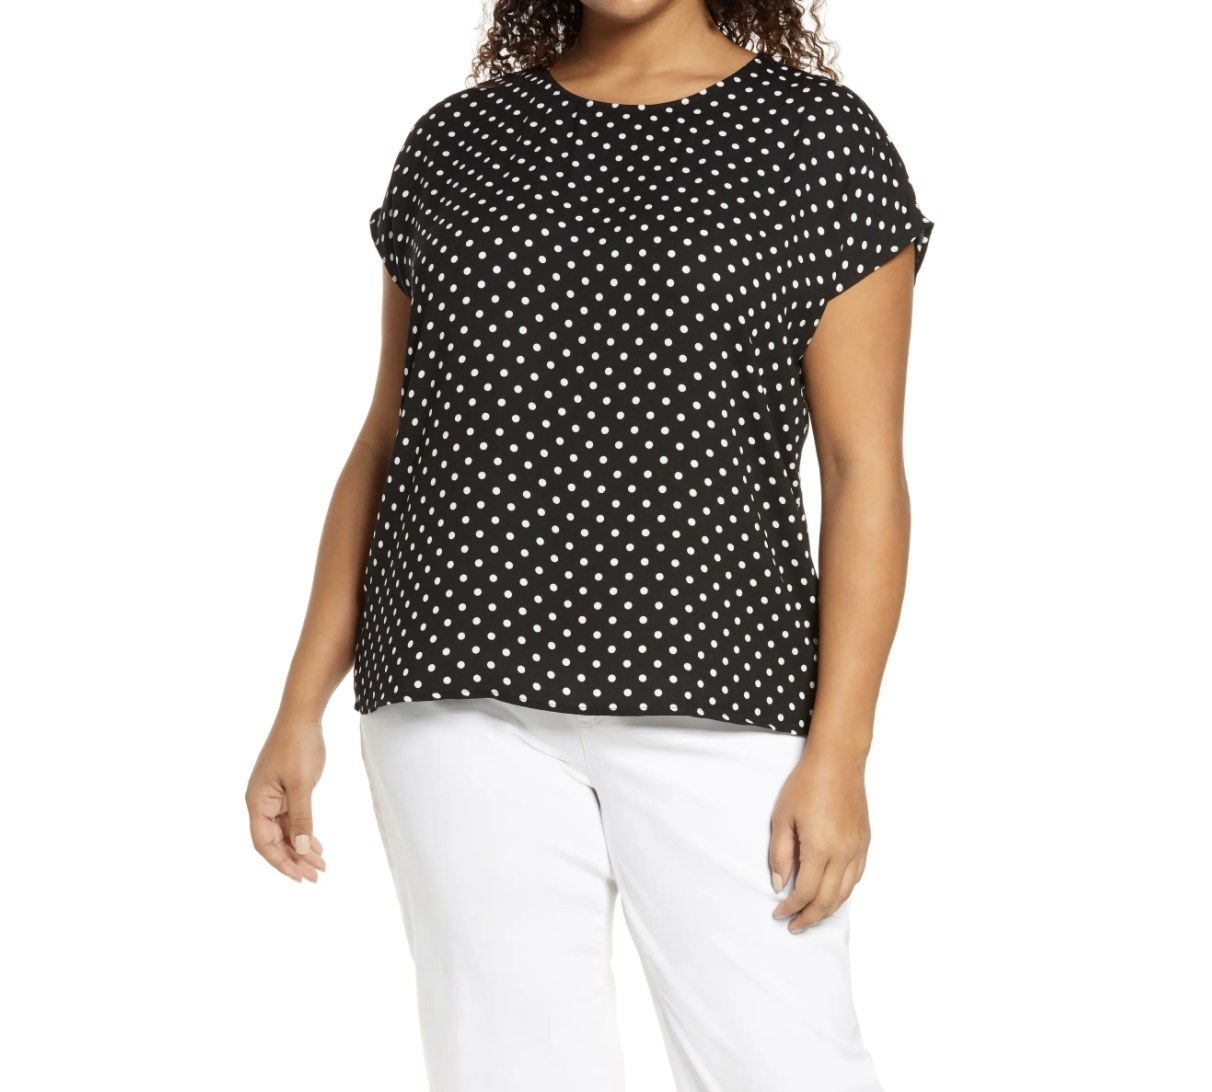 Model is wearing a black polka dot top and white pants